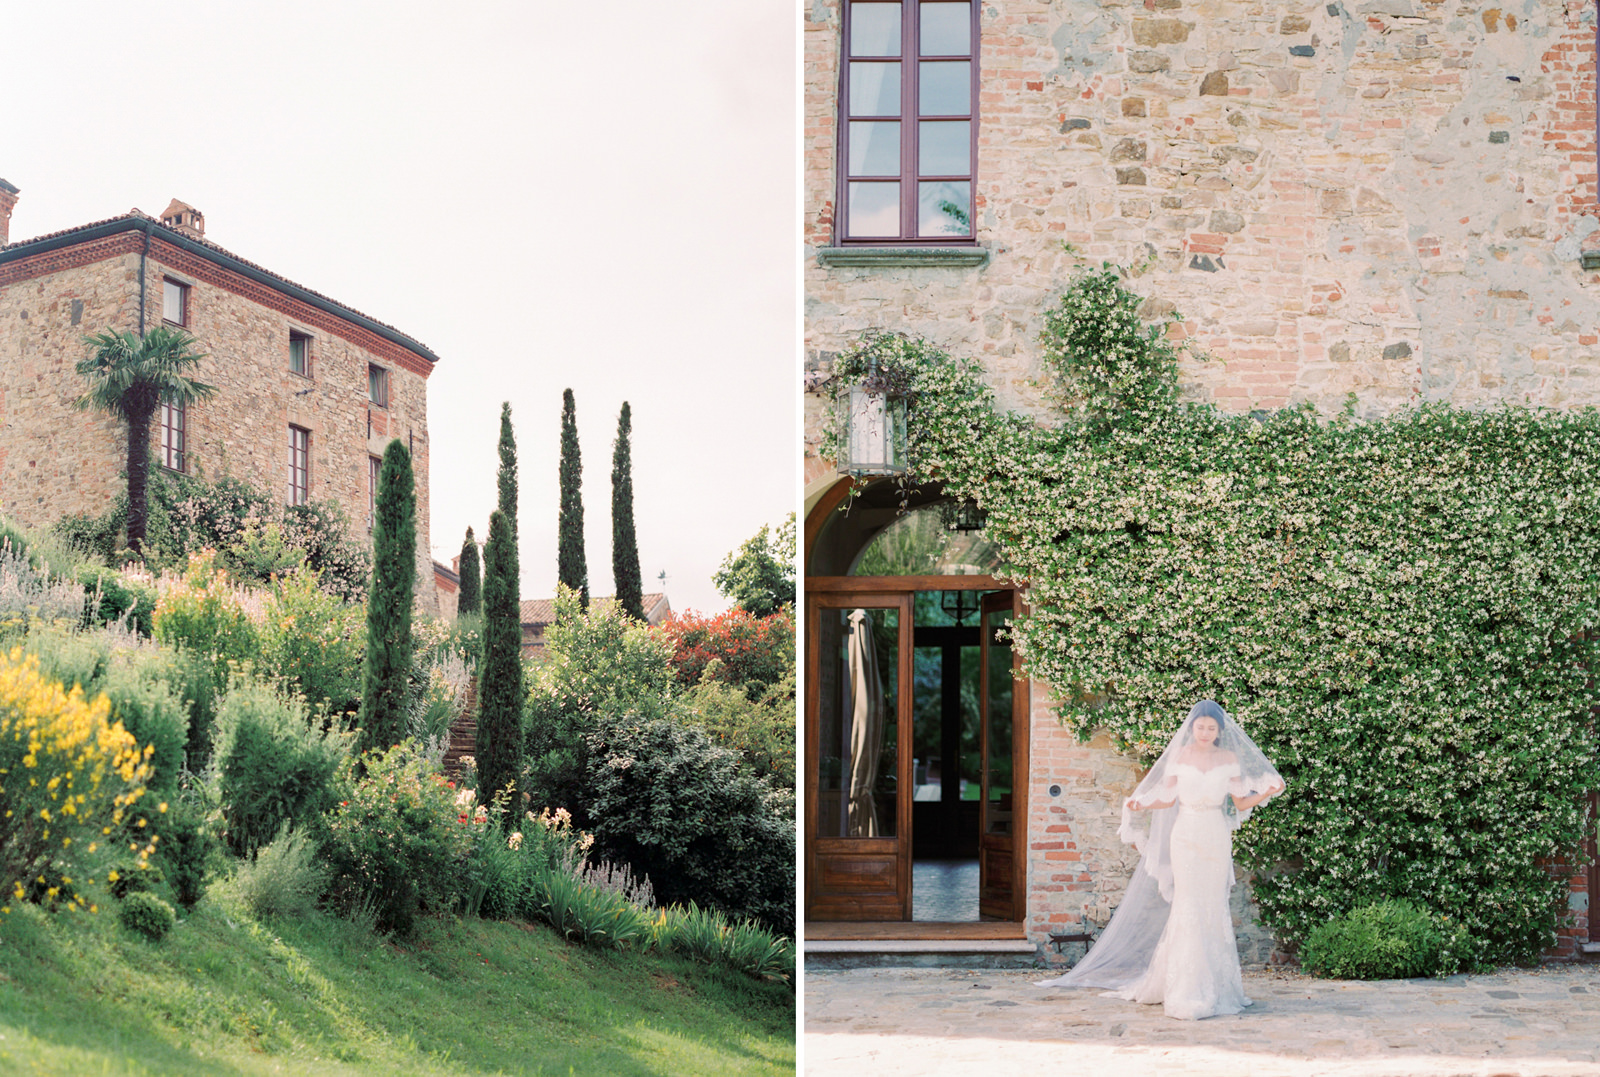 Milan Italy Wedding Photographer - CHYMO & MORE www.chymomore.co